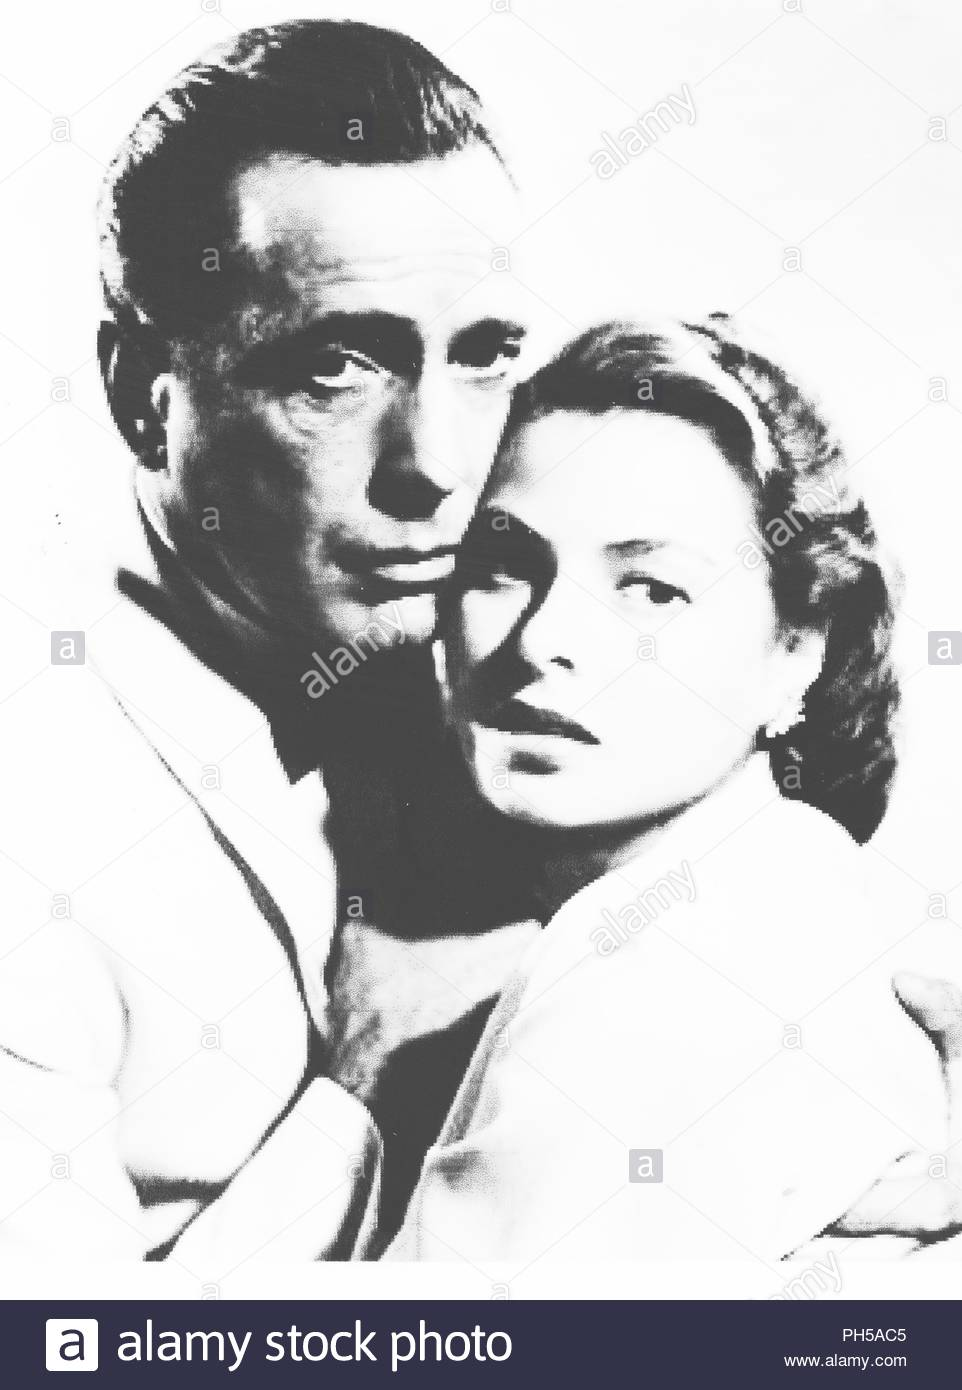 Humphrey Bogart and Ingrid Bergman in a publicity photo for their 1942 film Casablanca (1943). It won the Academy Award for Best Picture. With Paul Henreid, Claude Rains, Conrad Veidt, Peter Lorre. - Stock Image